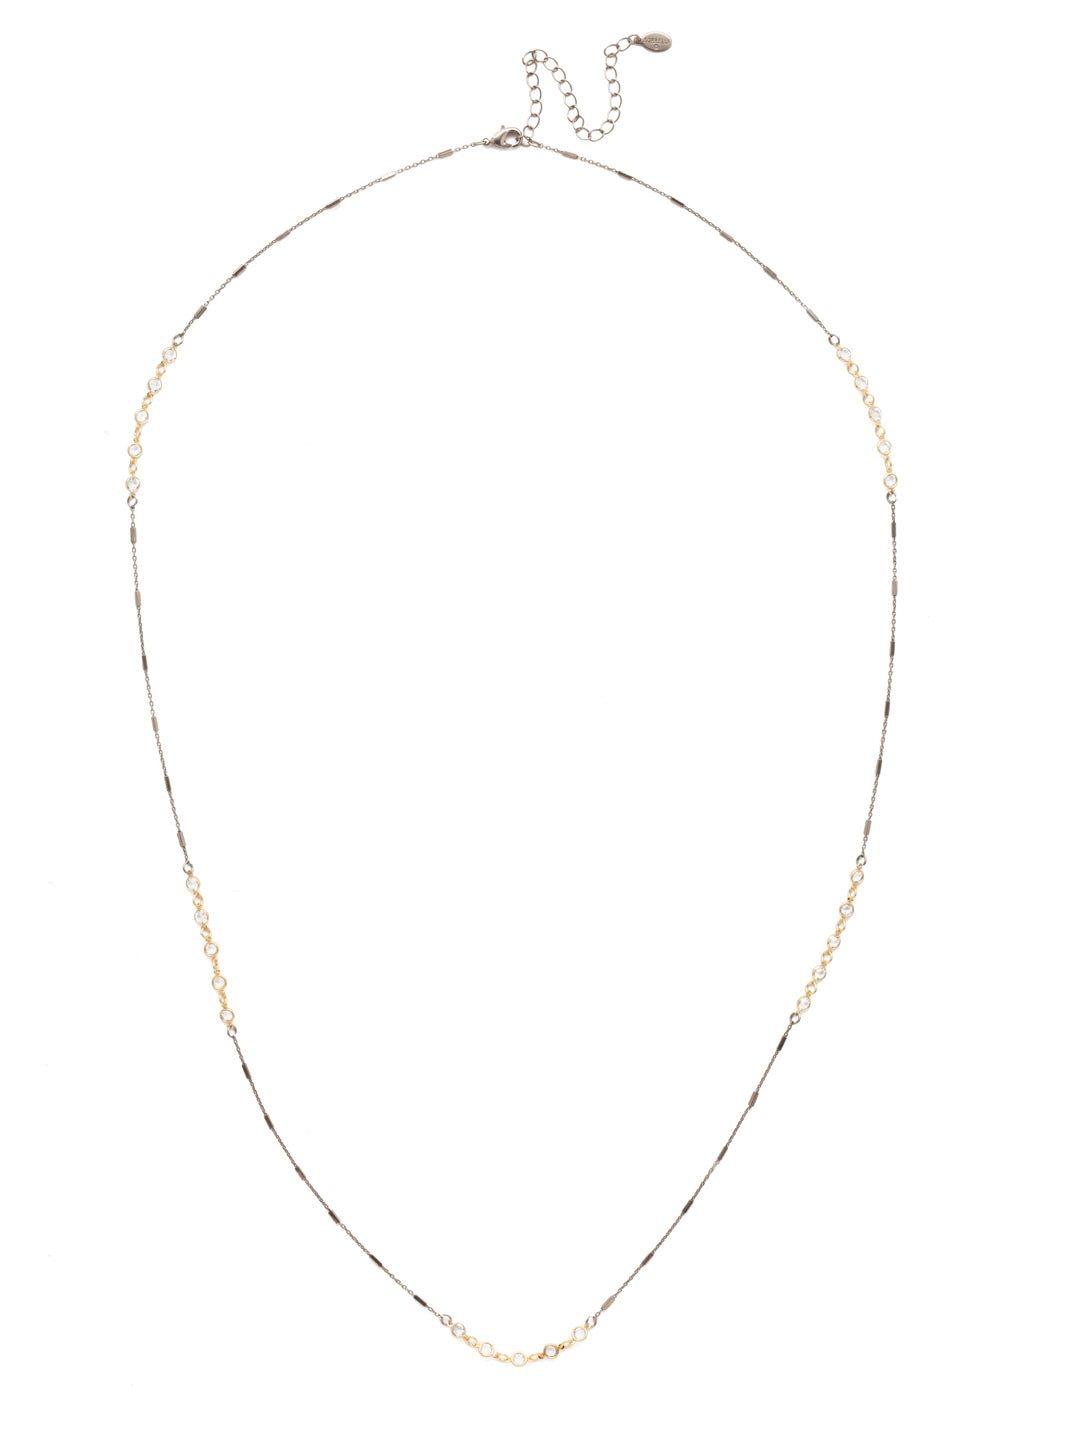 Rayna Tennis Necklace - 4NEN10MXCRY